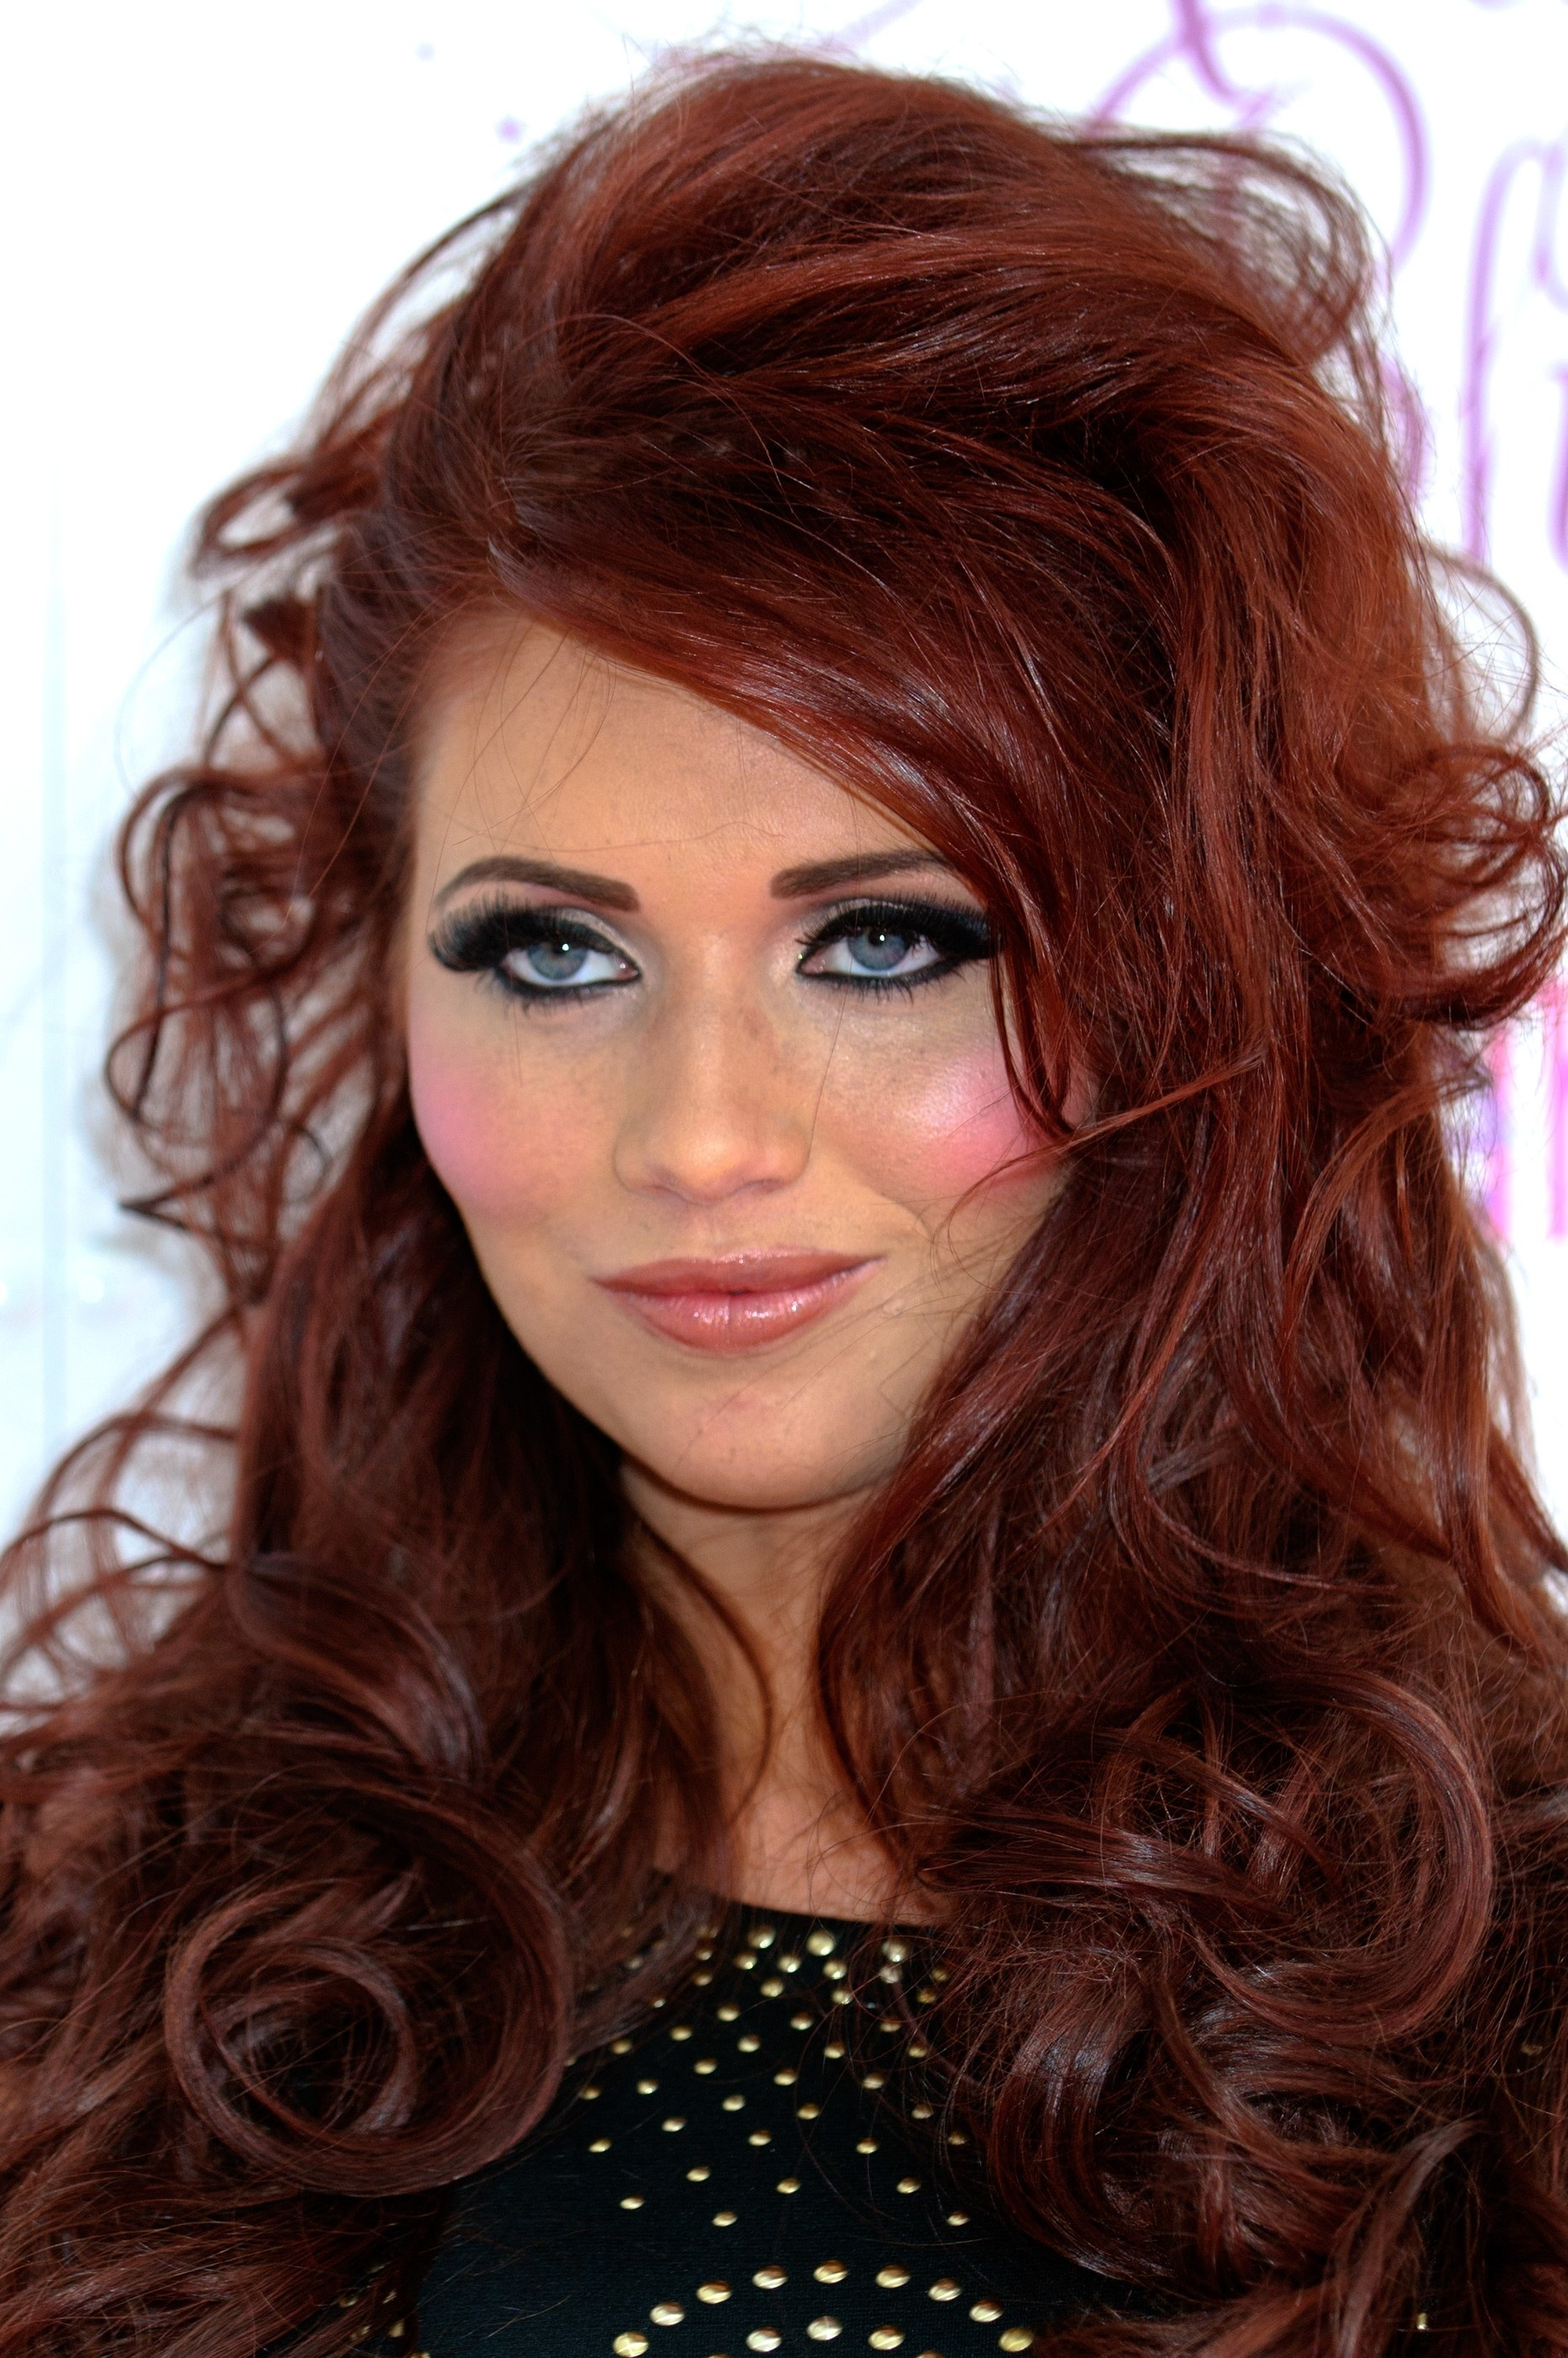 Amy Childs 3 000 HQ-UHQ Pics